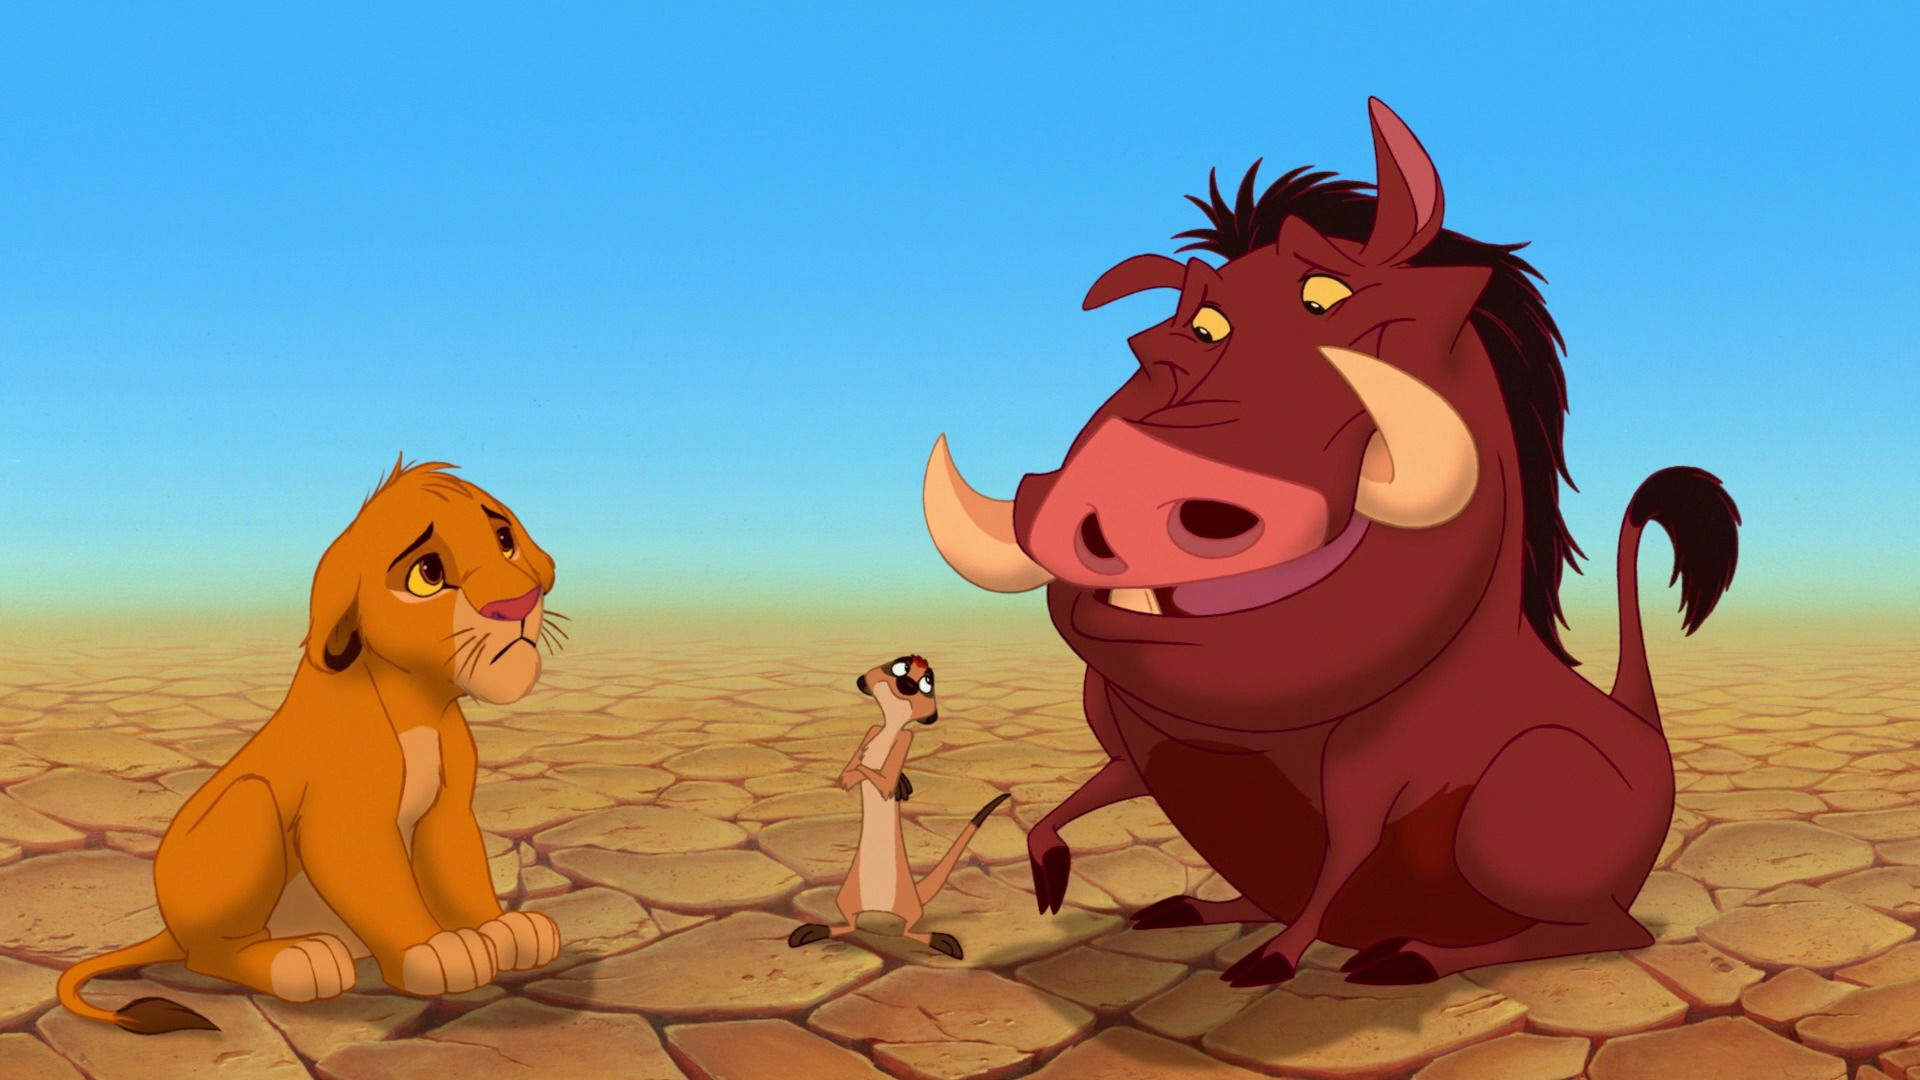 First footage of Jon Favreaus The Lion King unveiled at D23